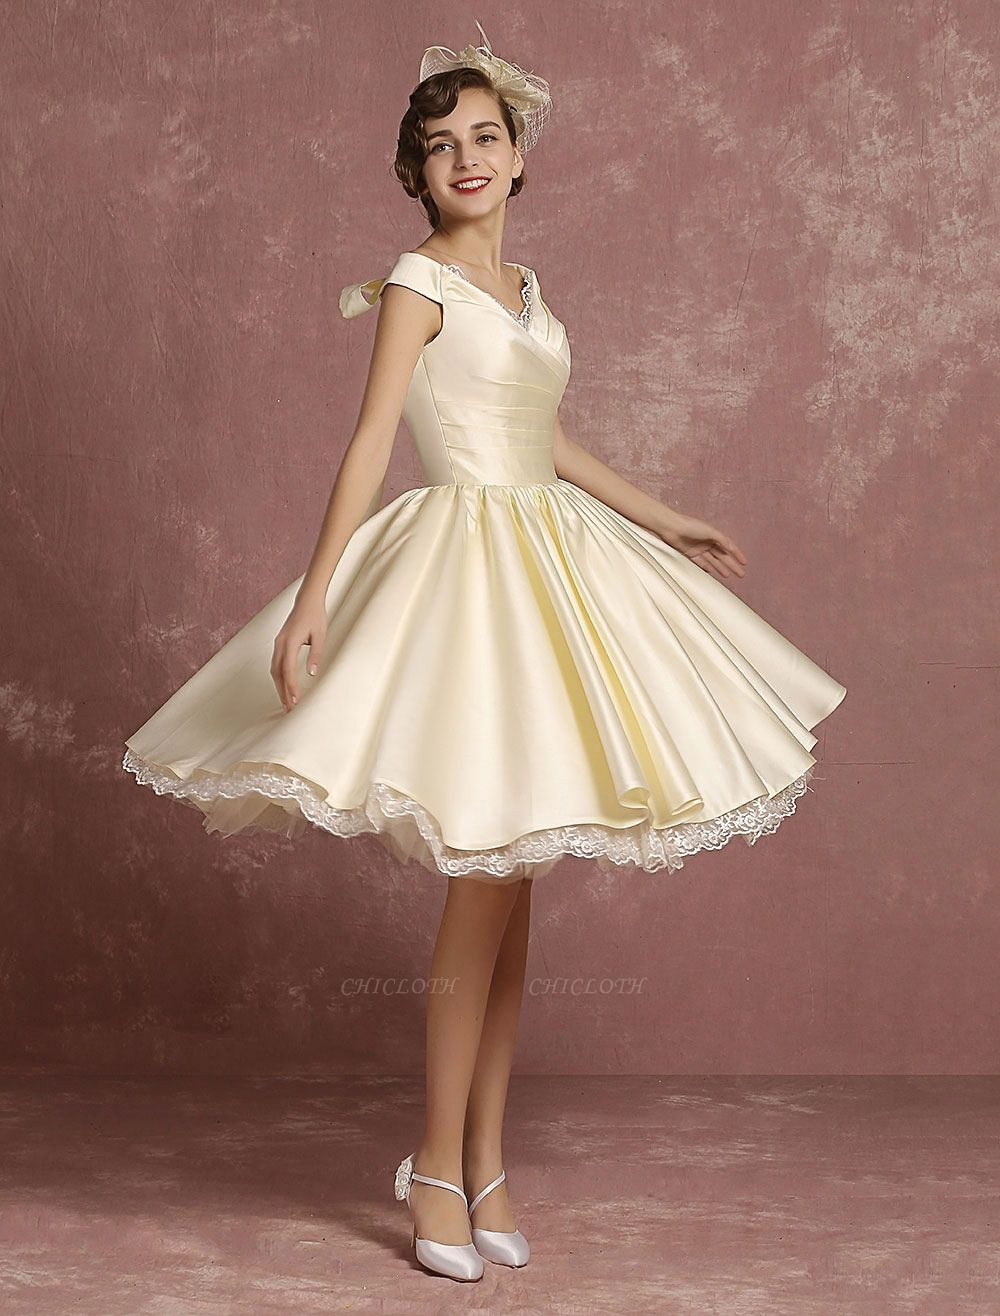 Short Wedding Gownses Satin Vintage Princess Wedding Dresses Knee Length Sleeveless Lace Edge Pleated Bridal Gown With Ribbon Bow Exclusive